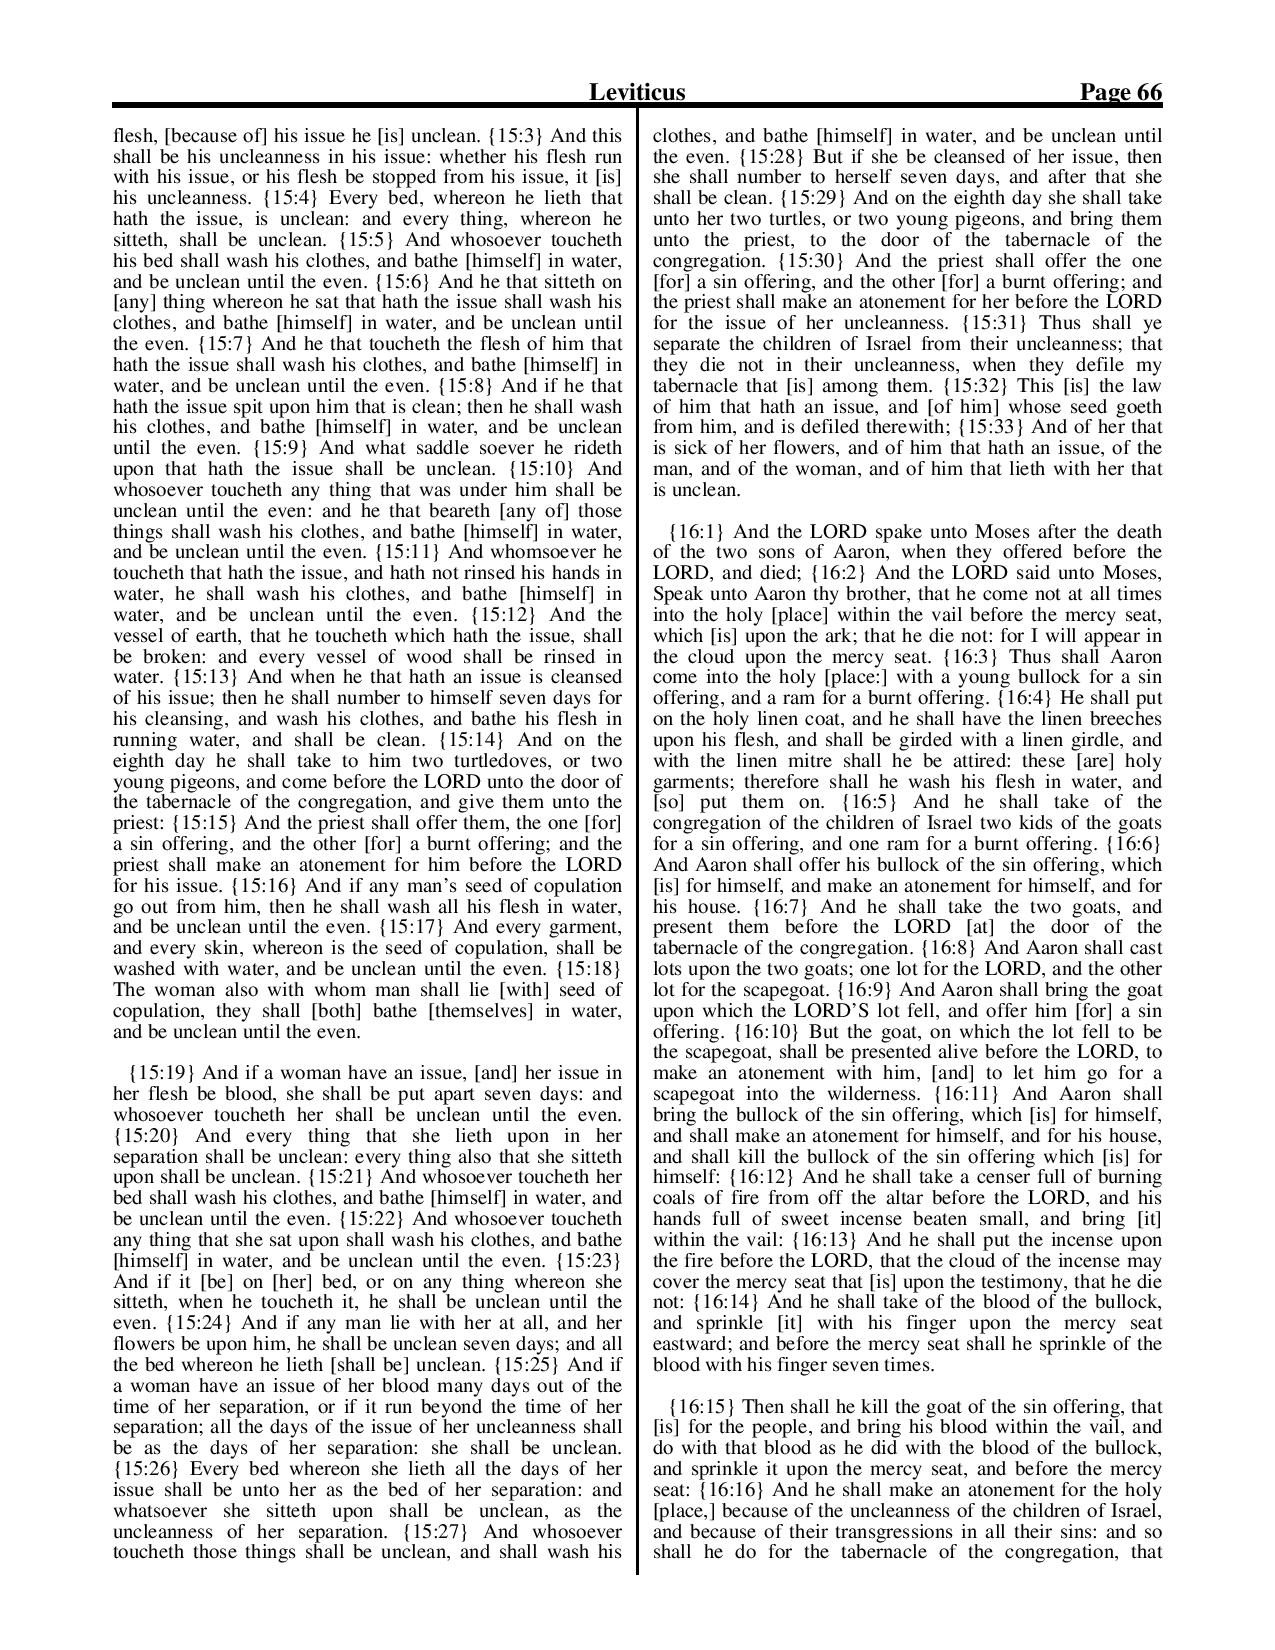 King-James-Bible-KJV-Bible-PDF-page-087